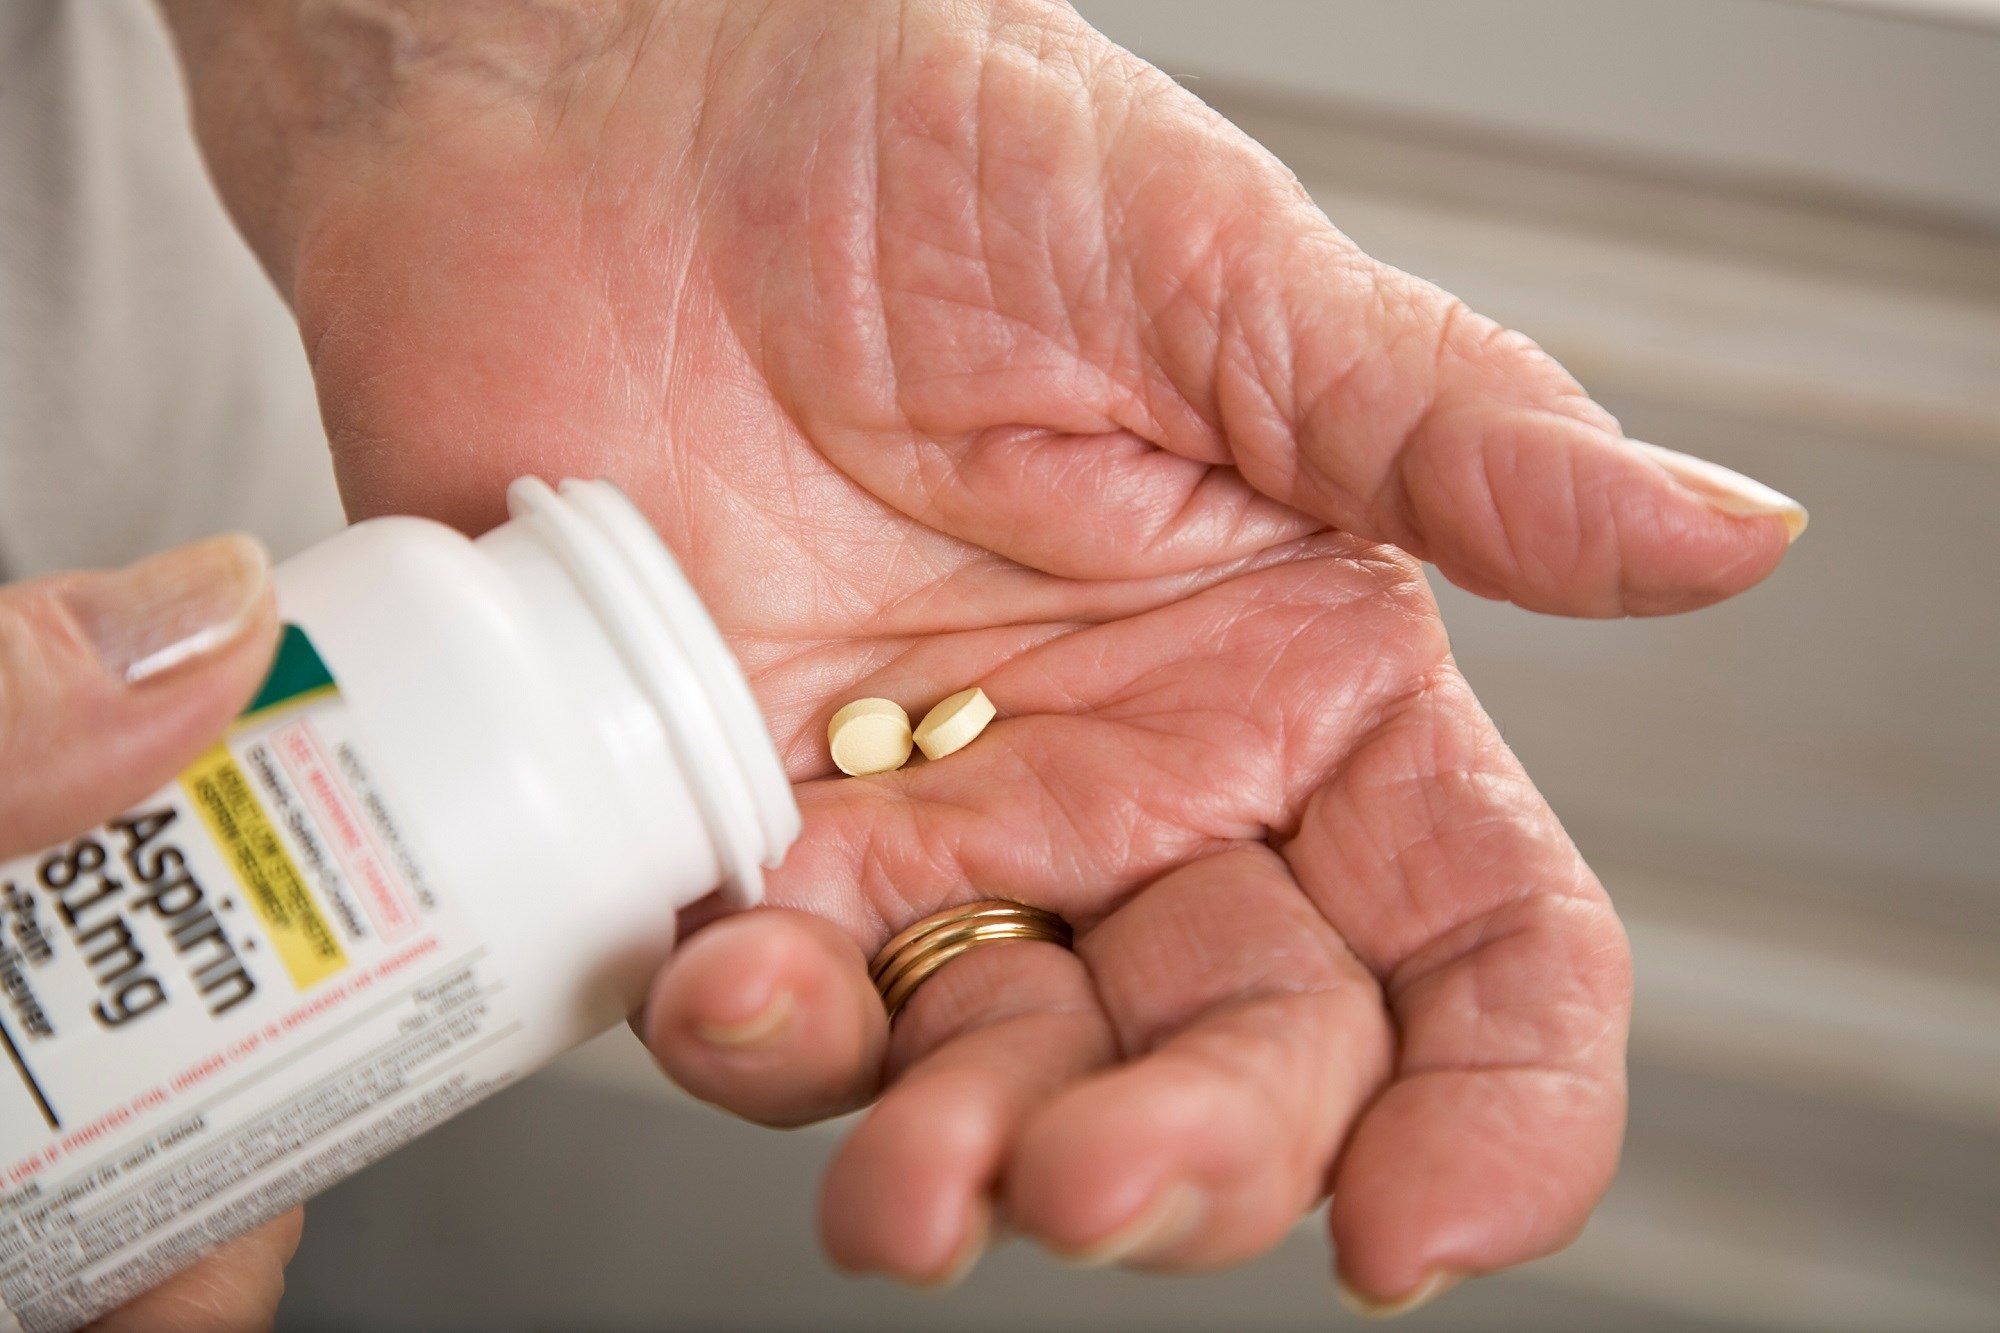 The use of aspirin in healthy elderly patients as a preventative strategy was associated with no prolongation of long-term disability-free survival compared with placebo.